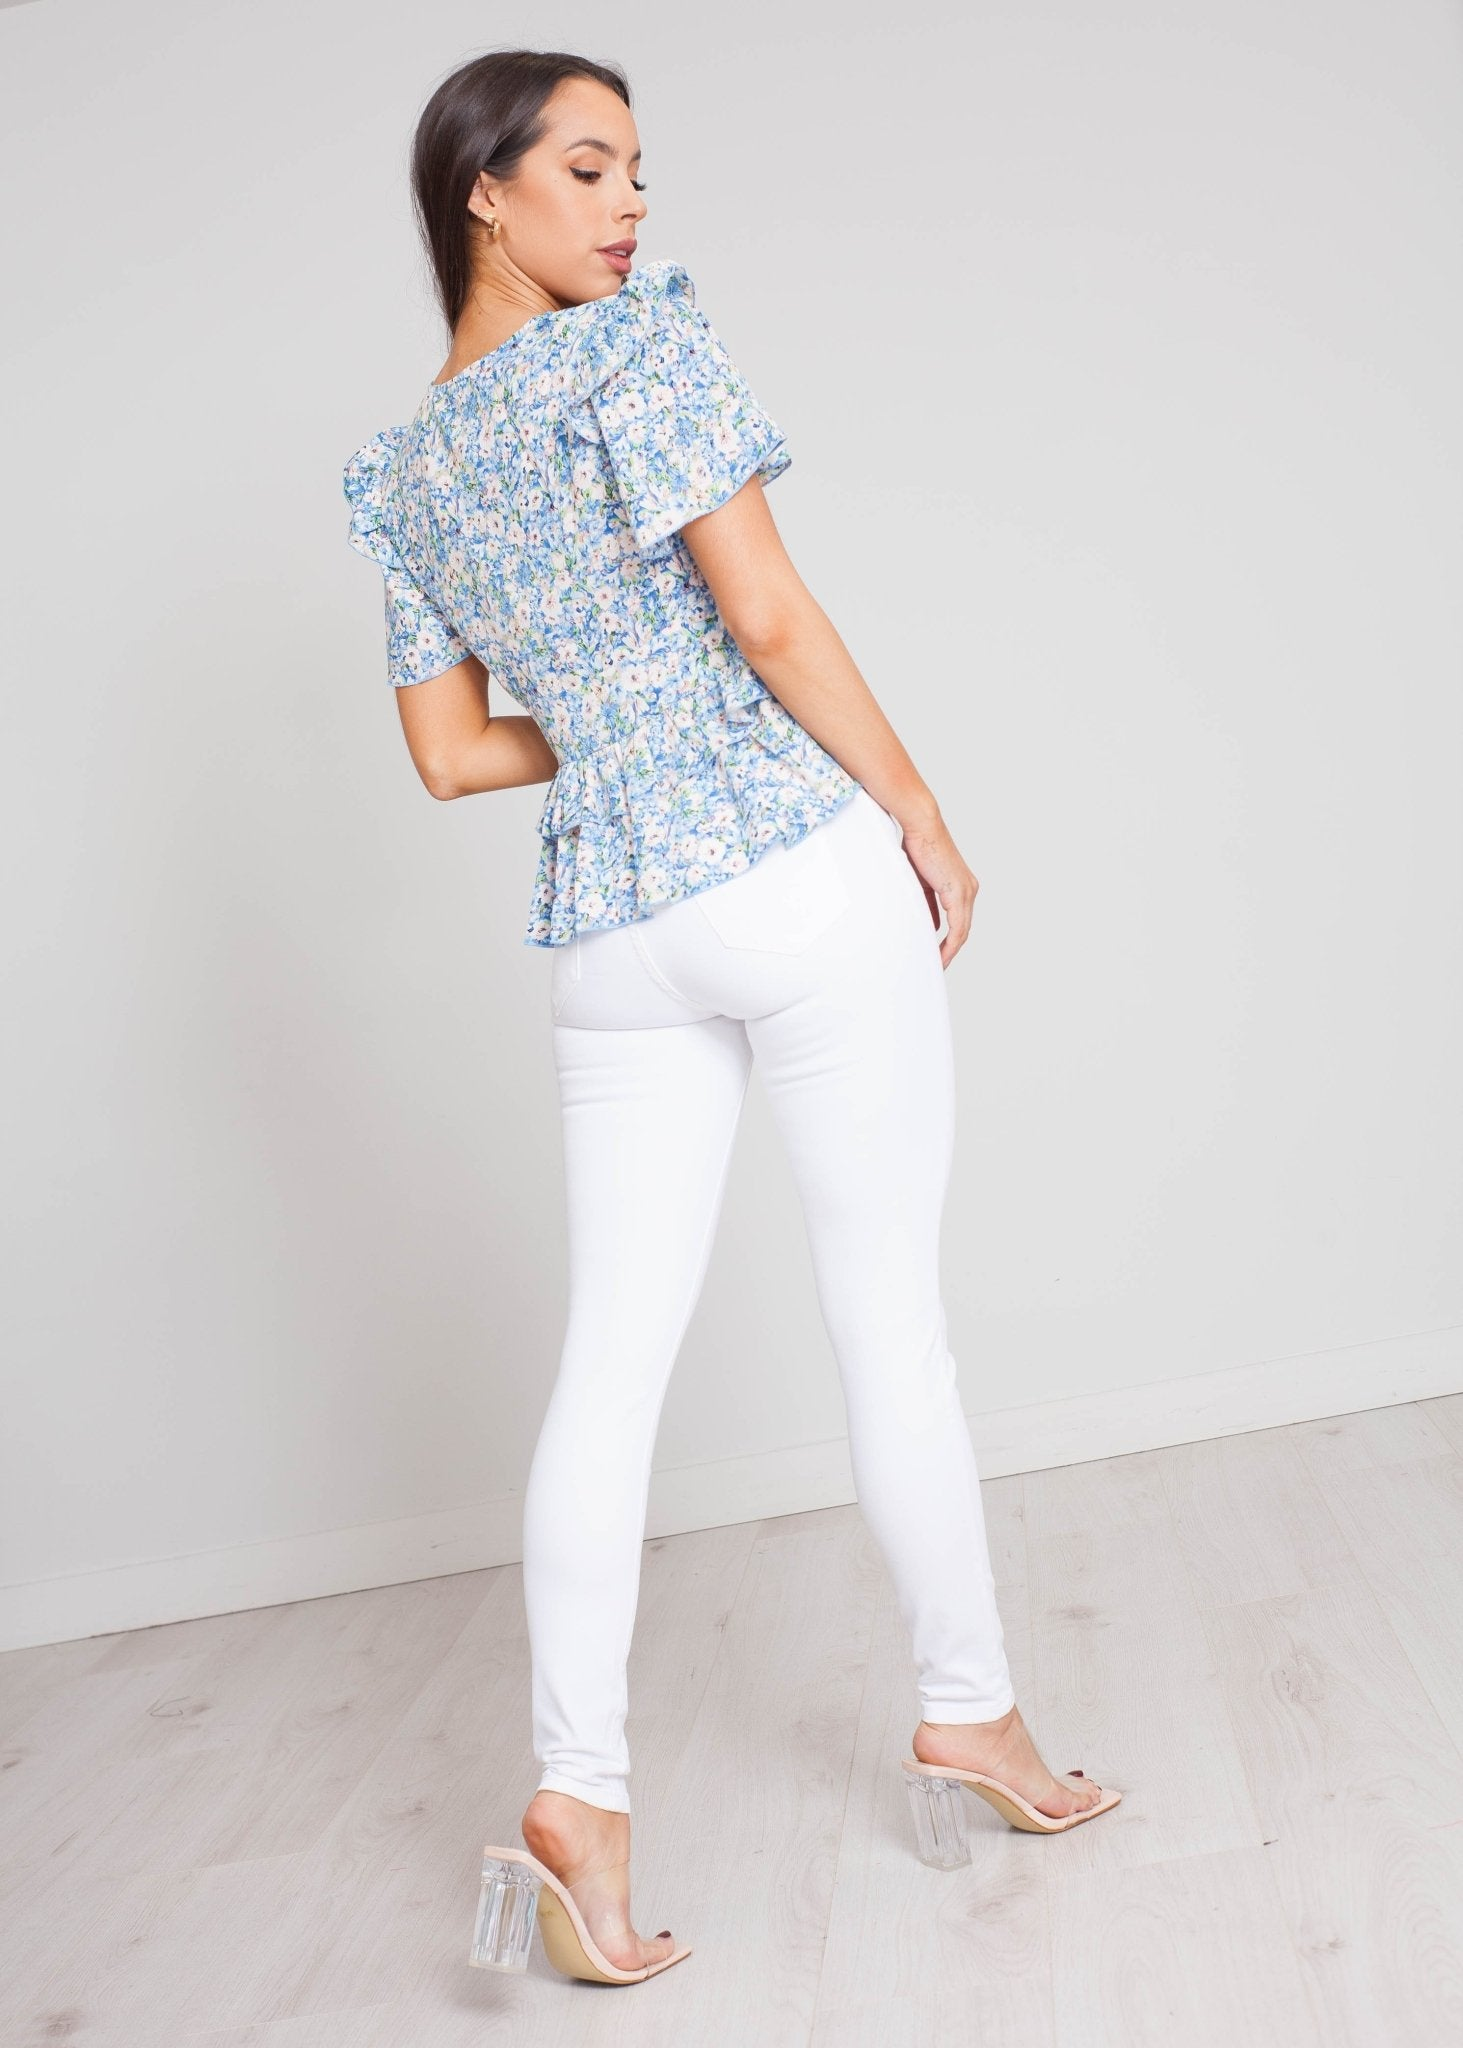 Nora Floral Blouse In Blue Mix - The Walk in Wardrobe